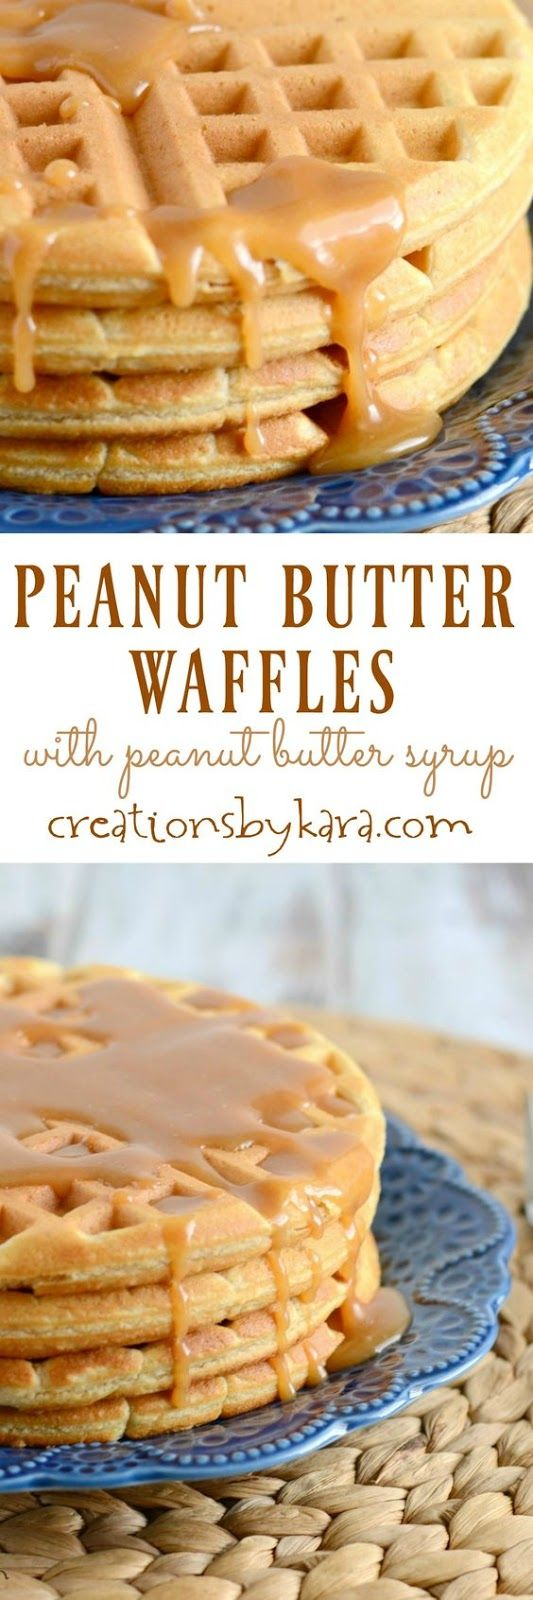 Peanut Butter Waffles | Cake And Food Recipe